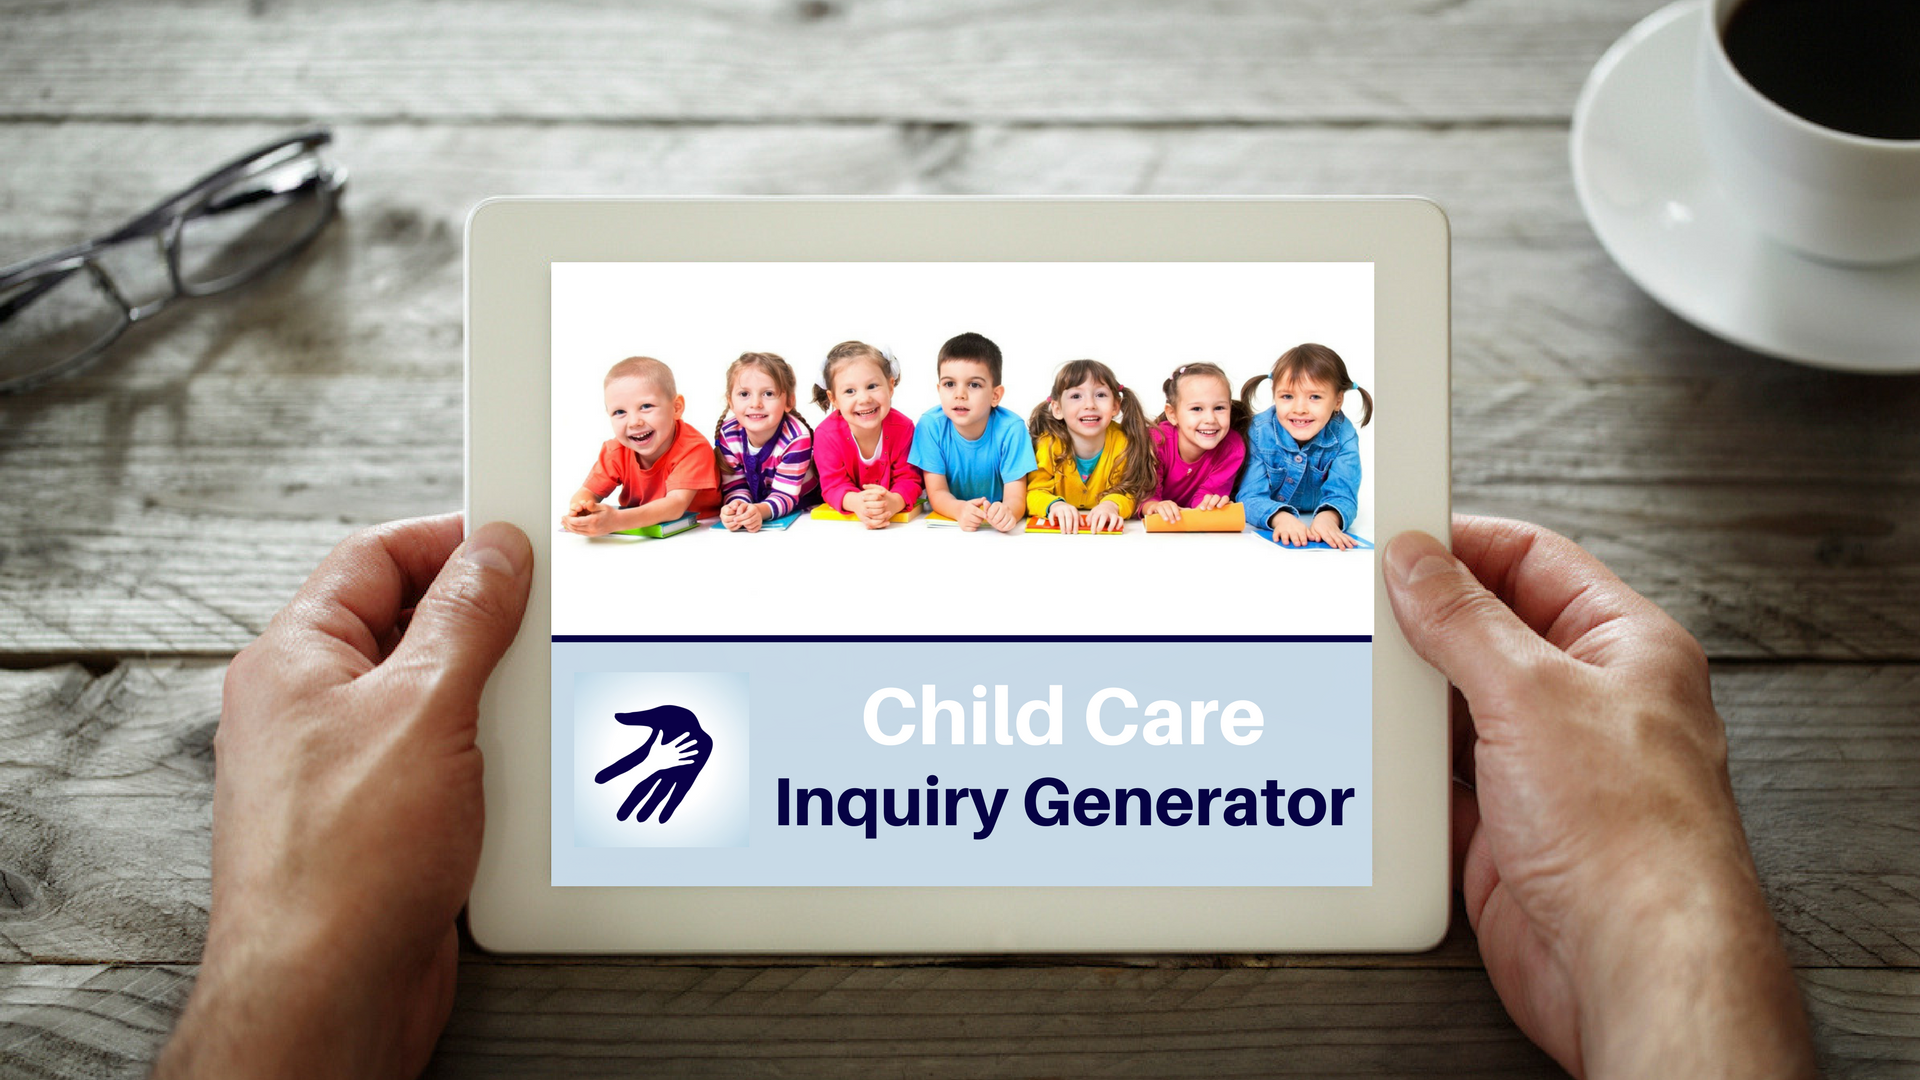 Child Care Inquiry Generator